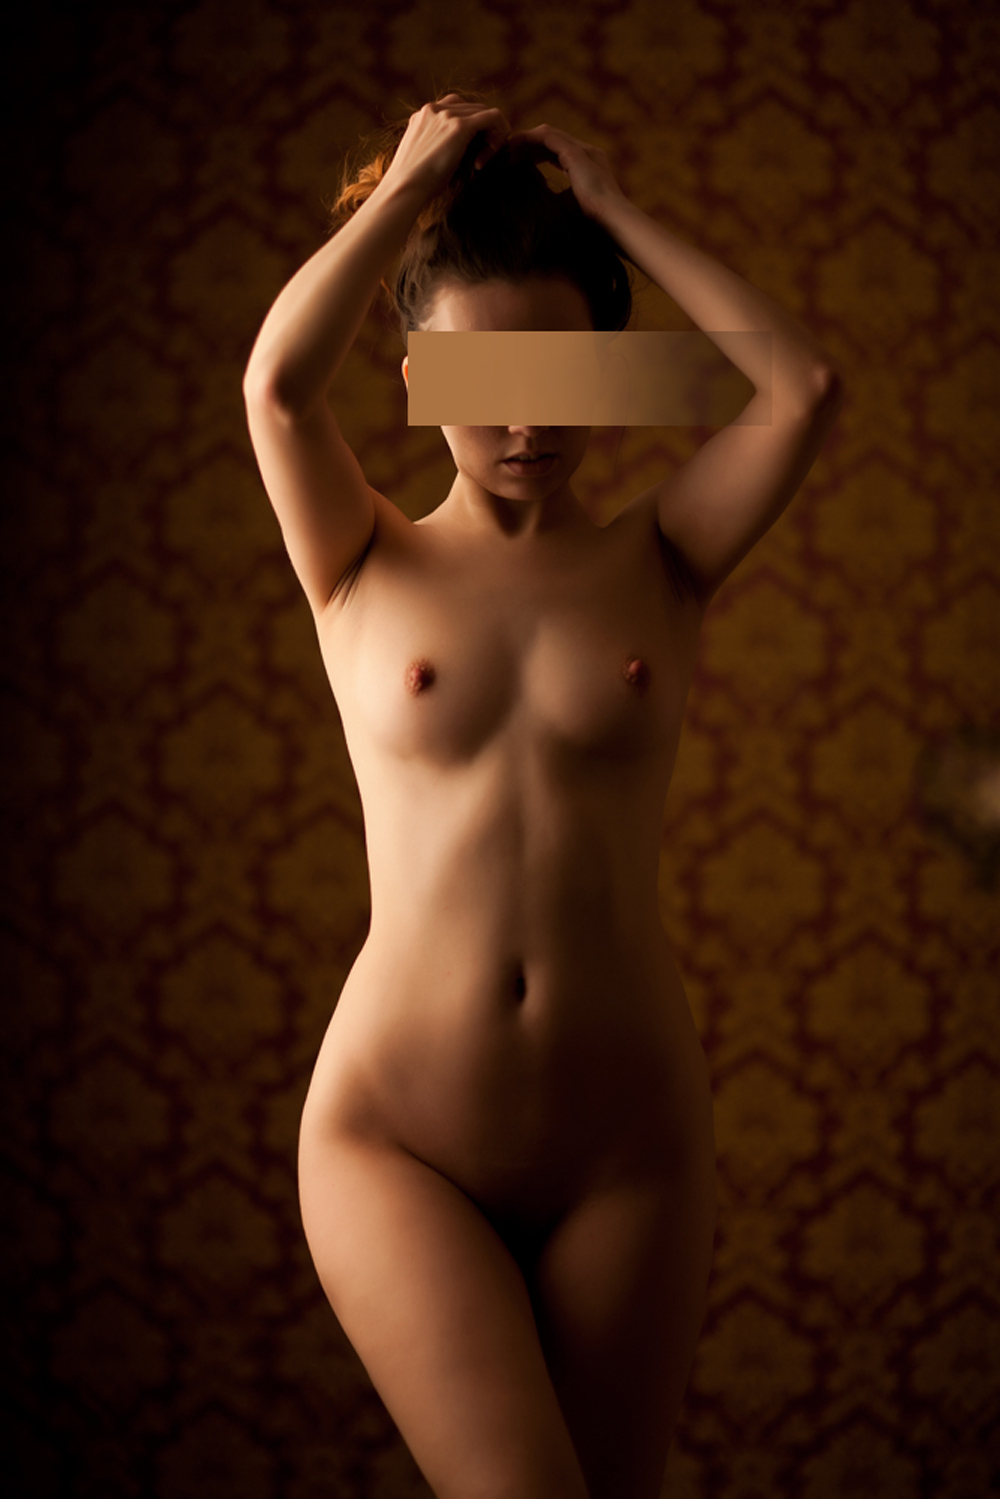 Romy Privatmodelle Escort77 Berlin